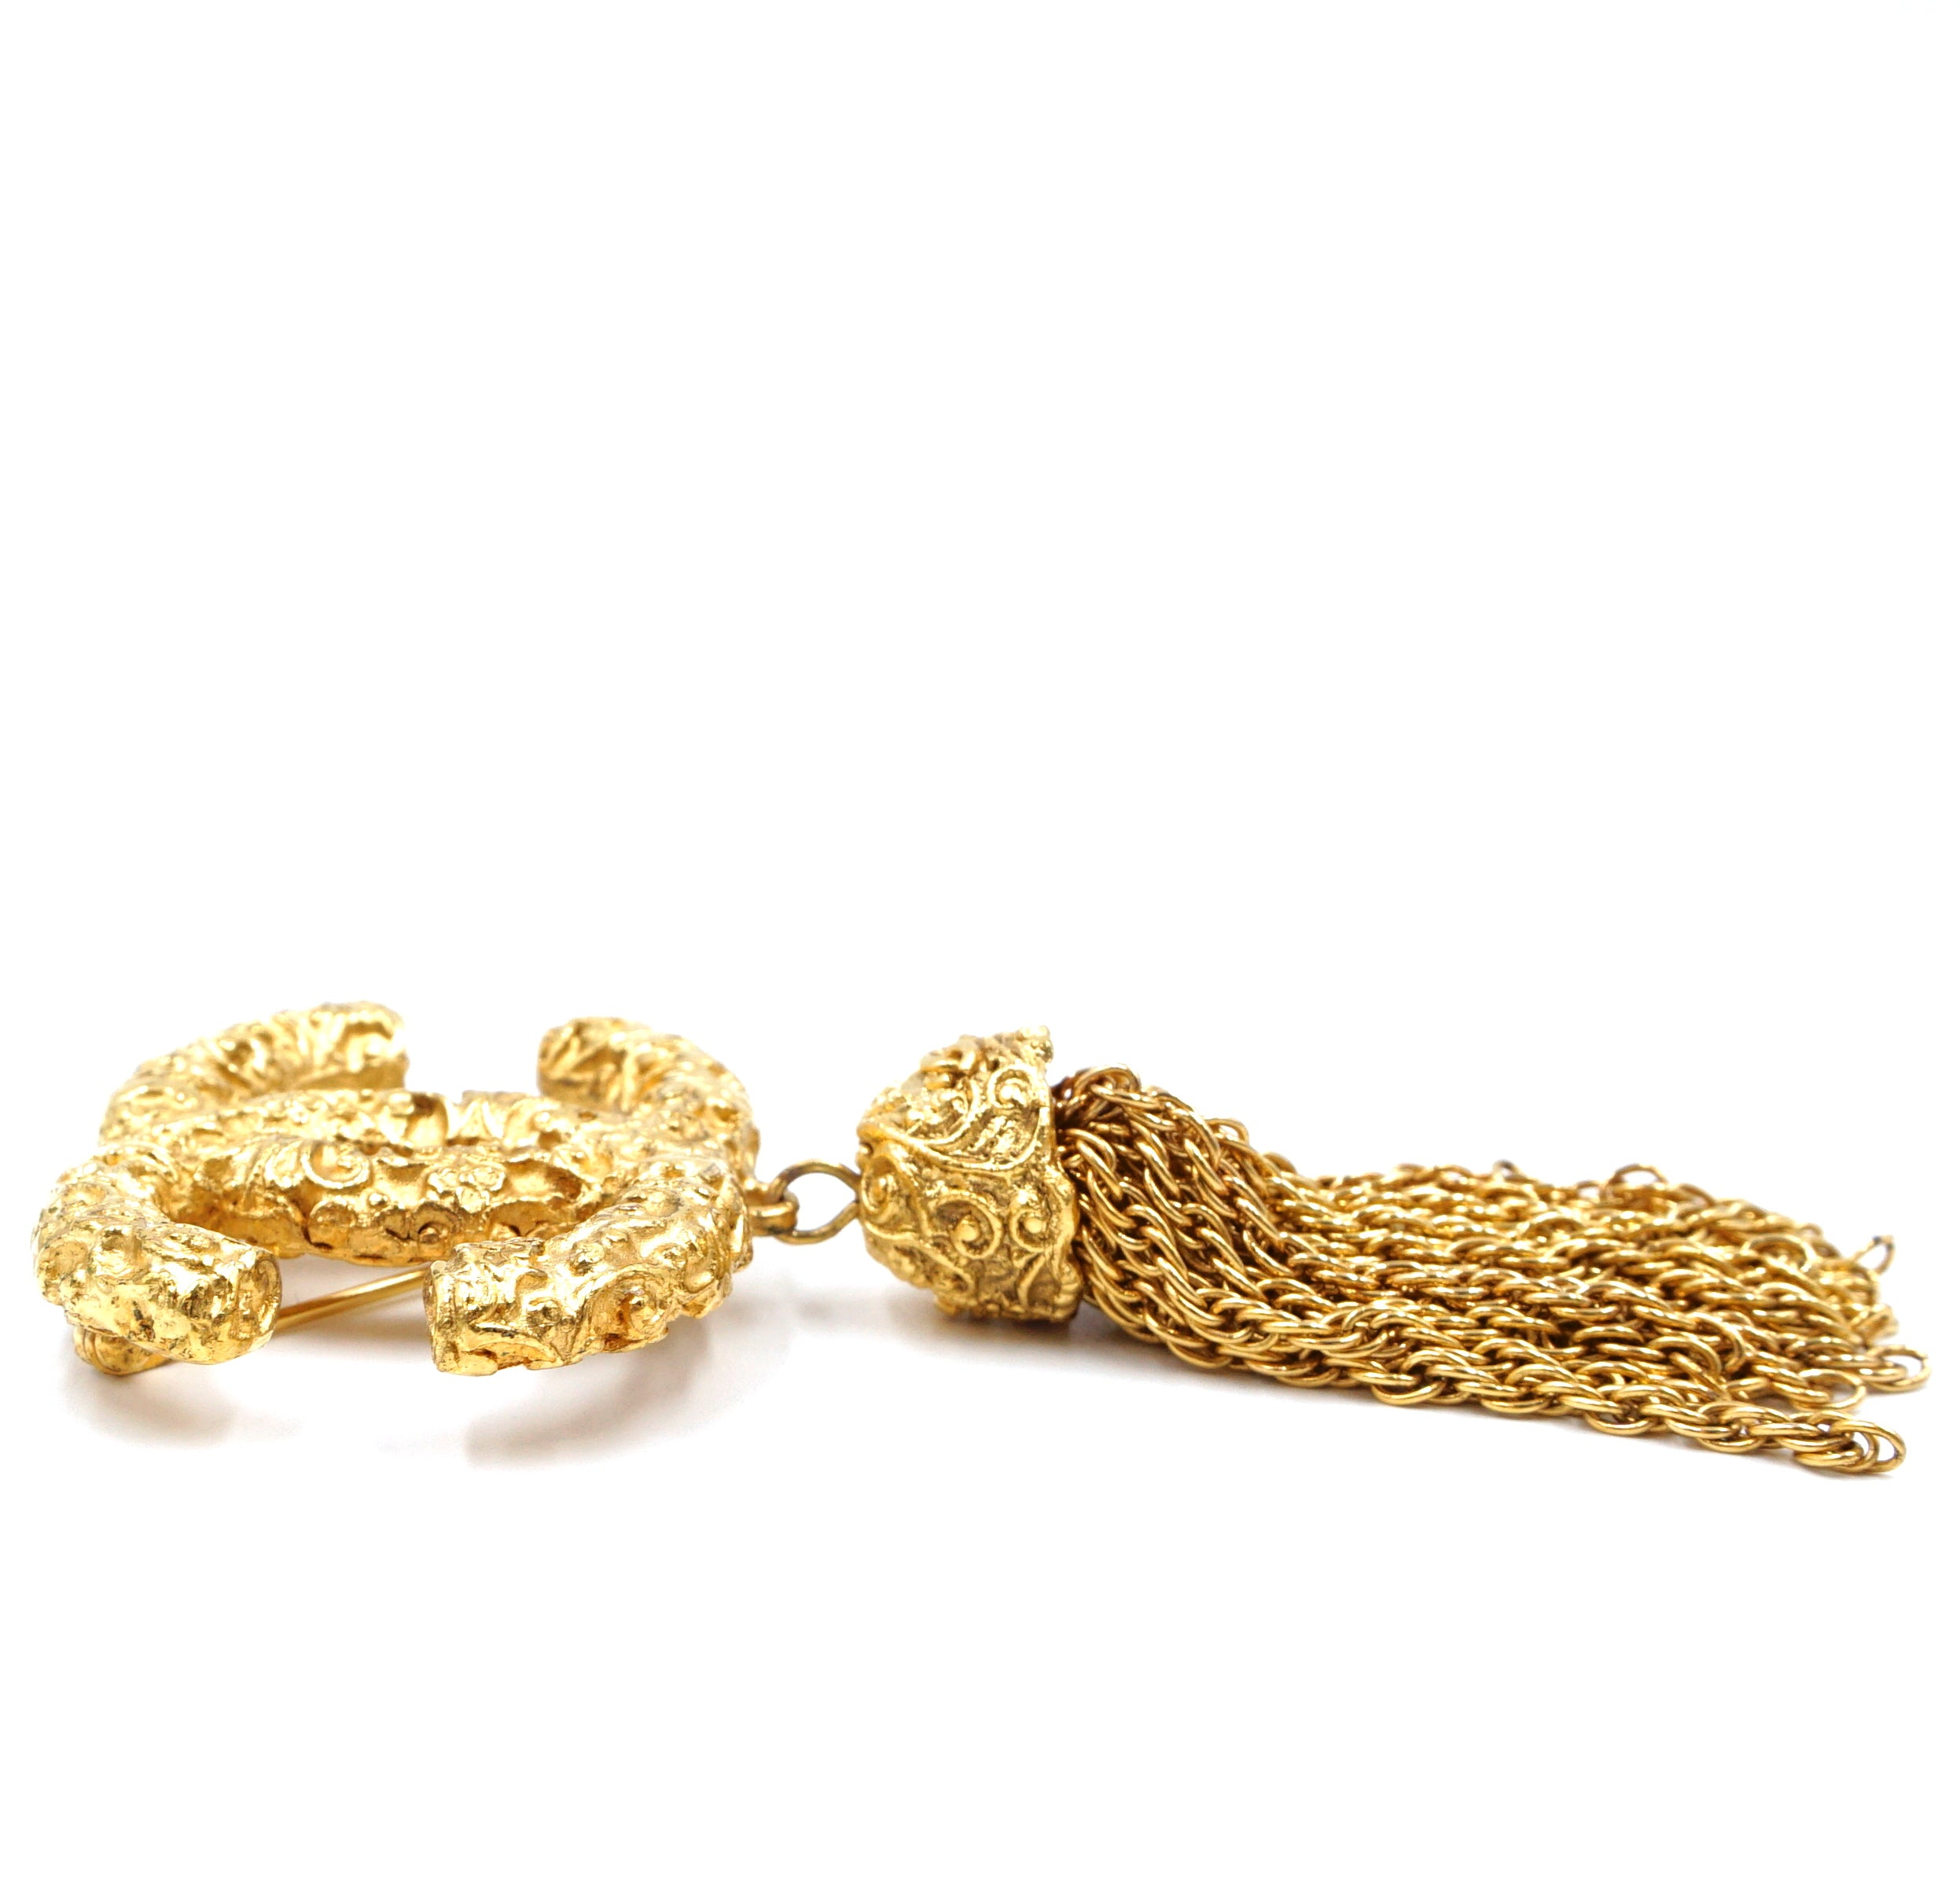 Chanel Gold CC Textured with Tassel Hardware Brooch